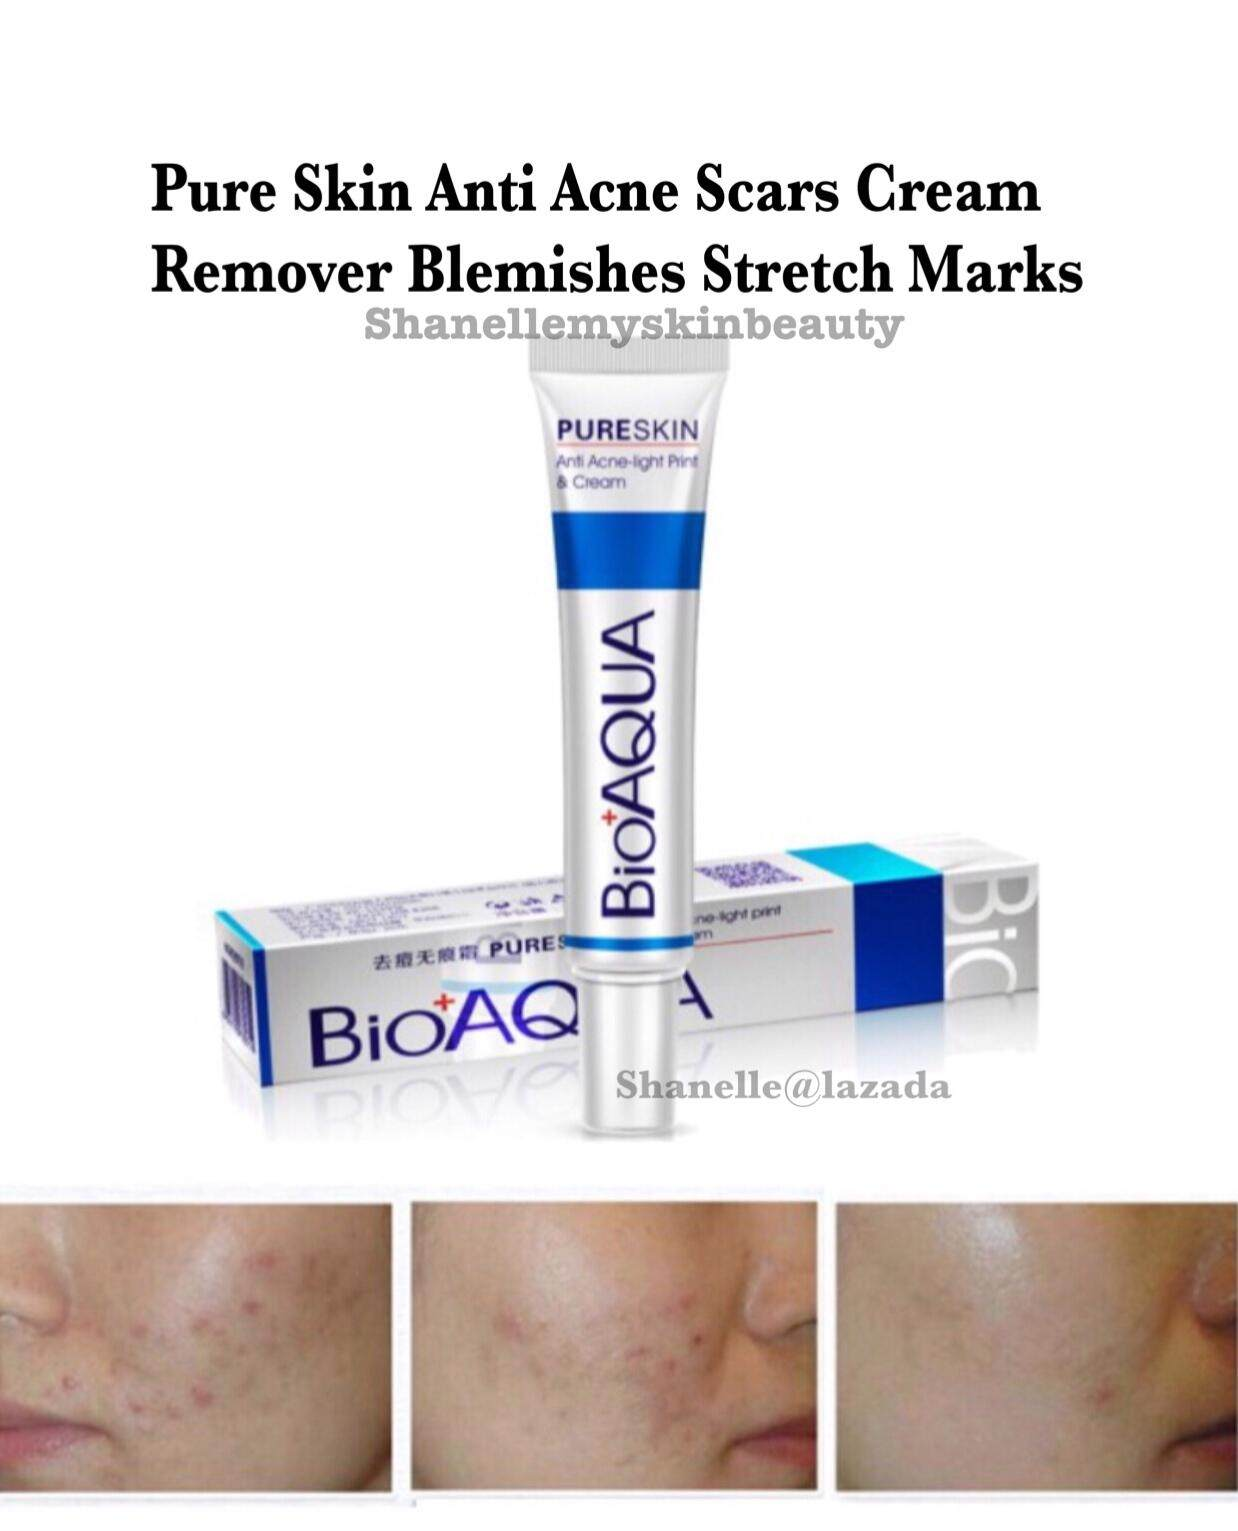 Pure Skin Anti Acne Scars Remover Scars Cream Blemishes Stretch Marks Acne Removal Shrink Pores Blackheads Repairing Damages Skin Oil Control Rejuvenation Cream 30g By Shanelle.